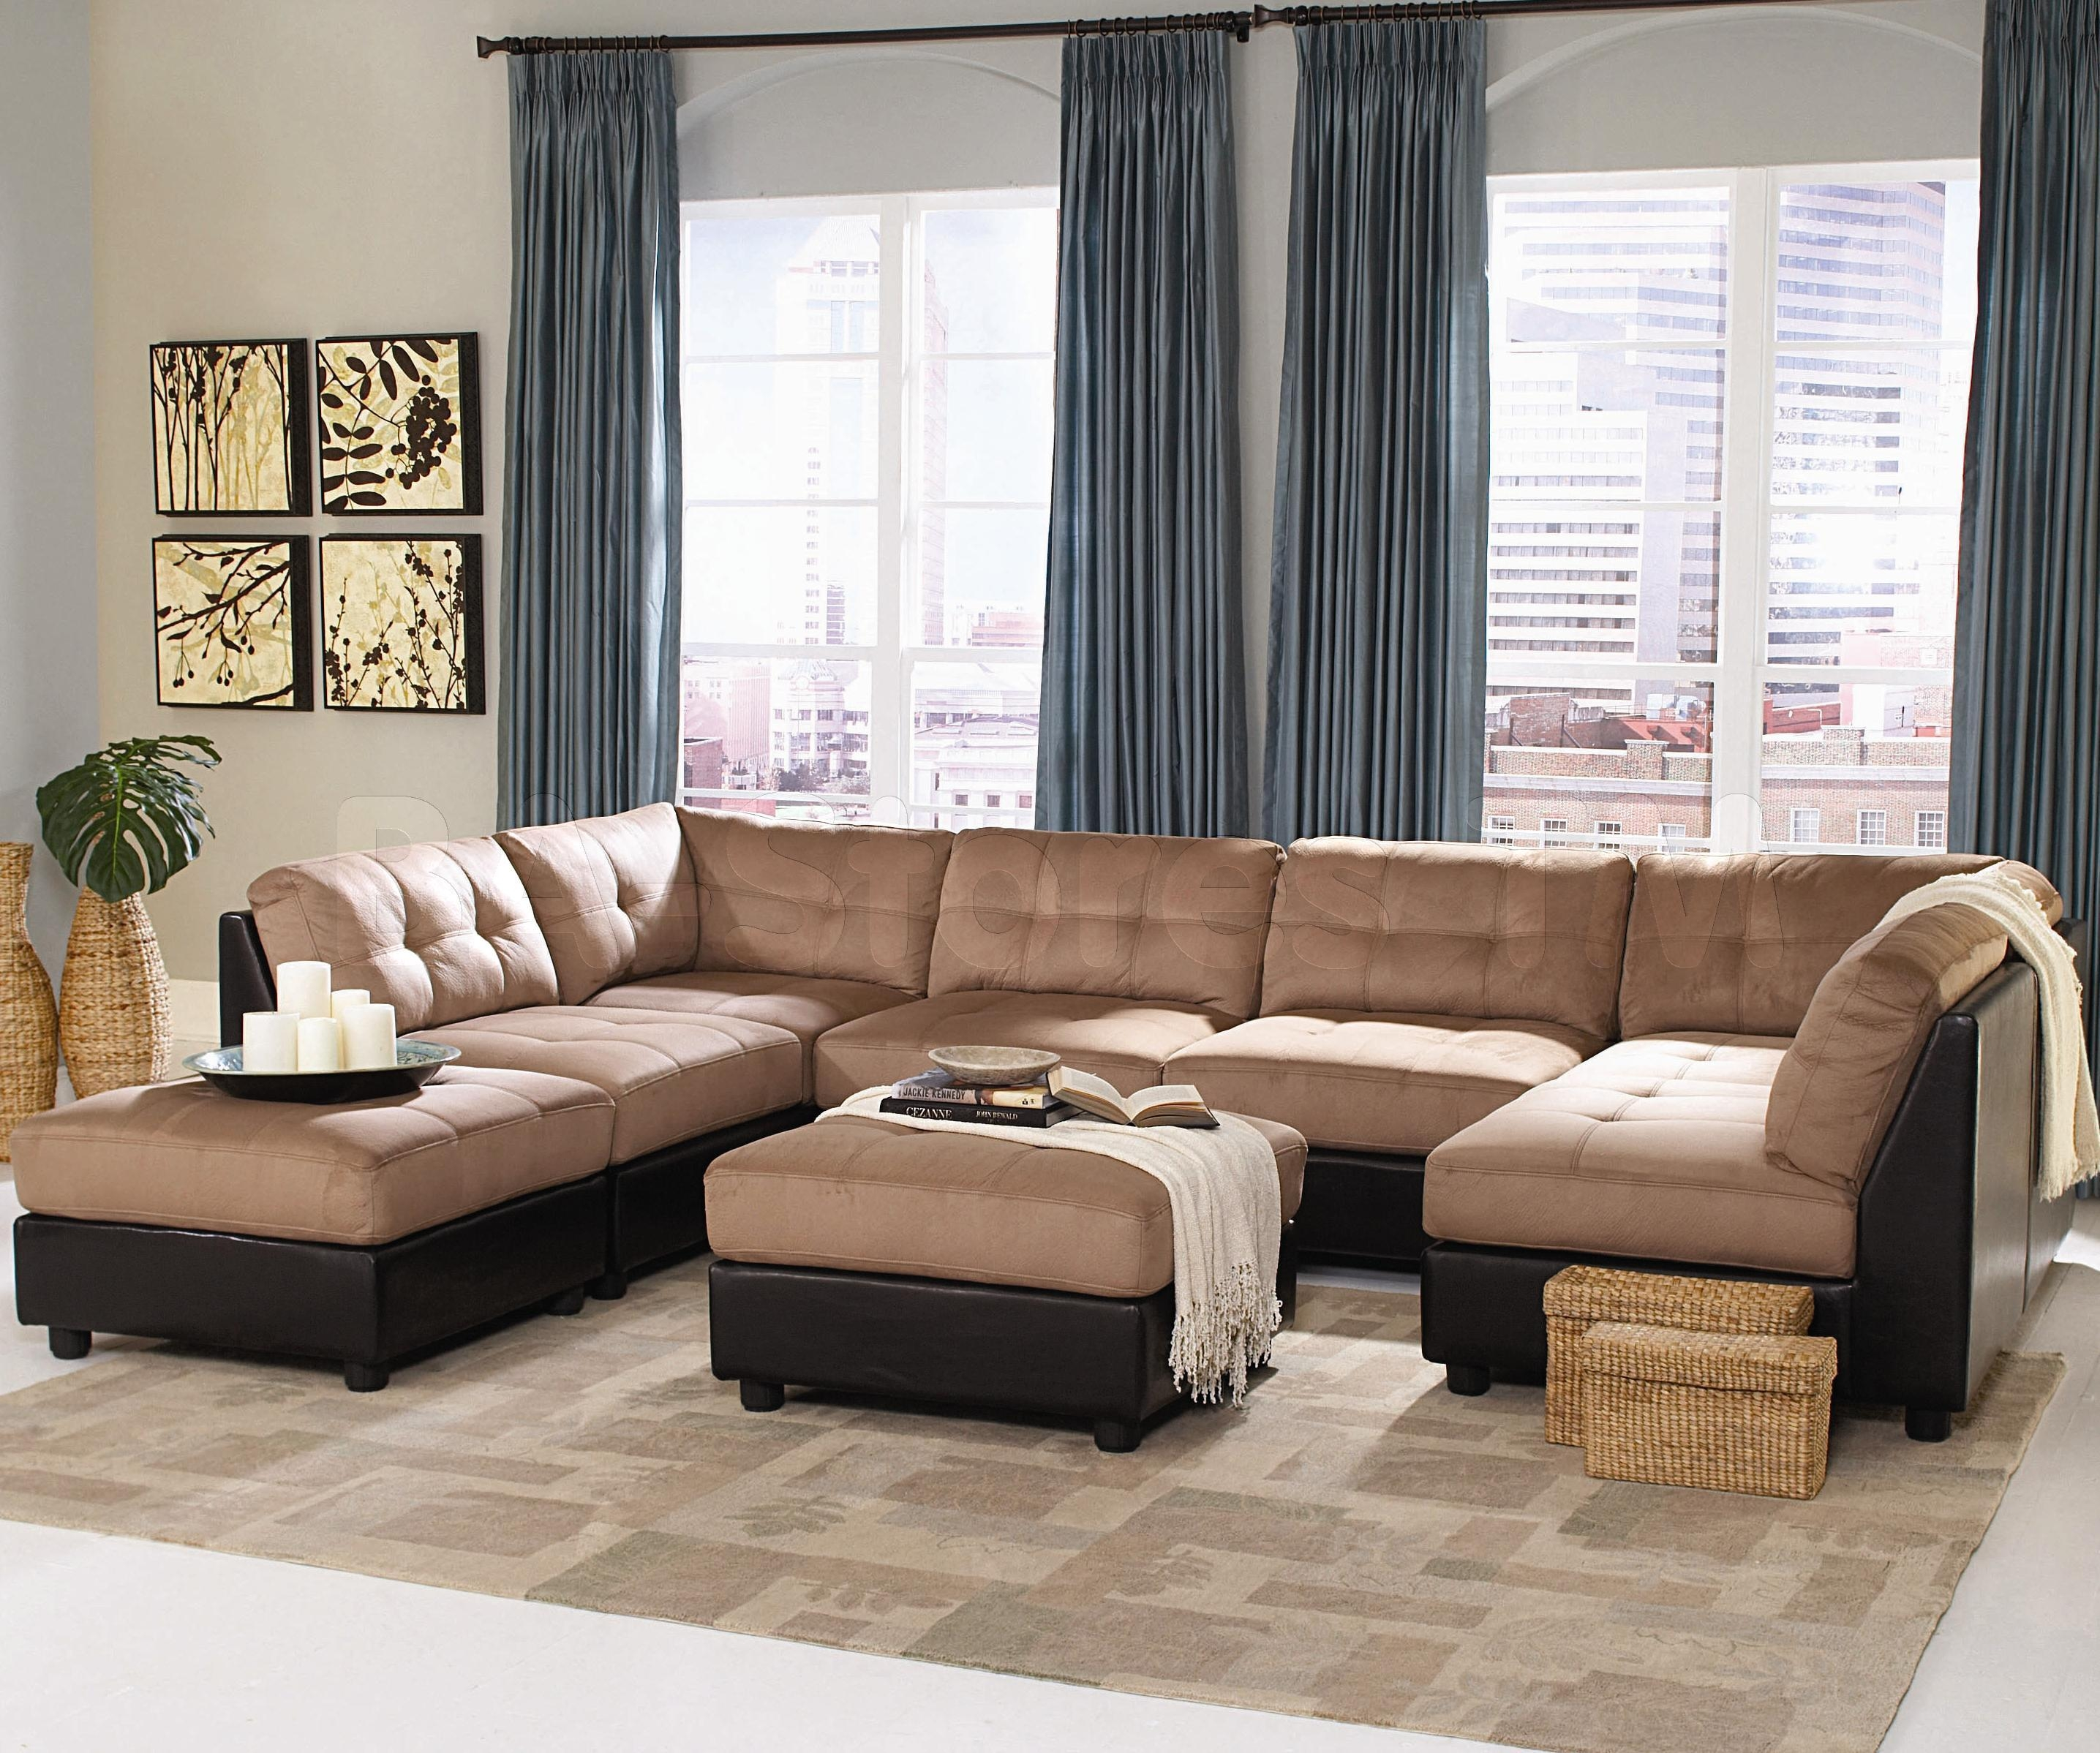 Living Room Furniture Ideas Sectional | Eiforces With Nice Sectional Couches (Image 15 of 20)